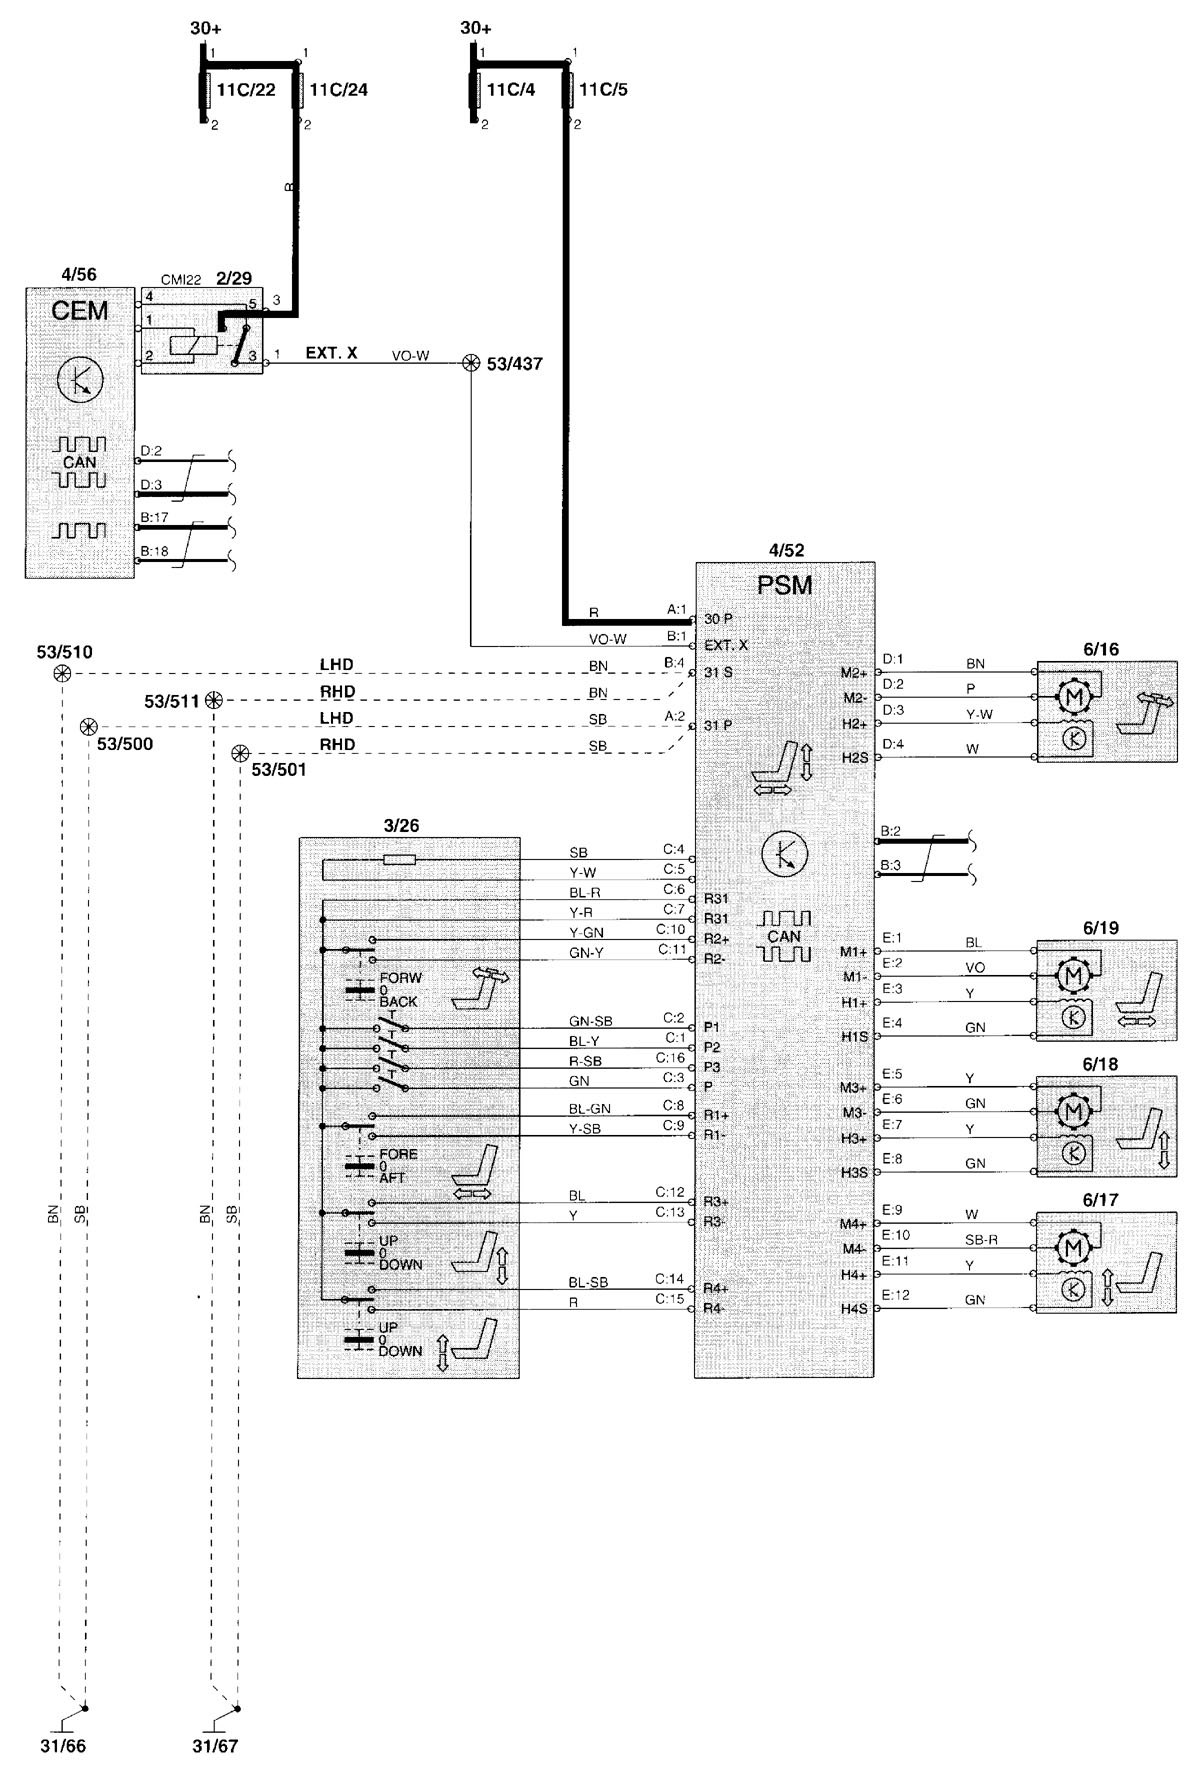 heated seat wiring diagram volvo v70 - schematic diagram database on volvo  v70 cooling,